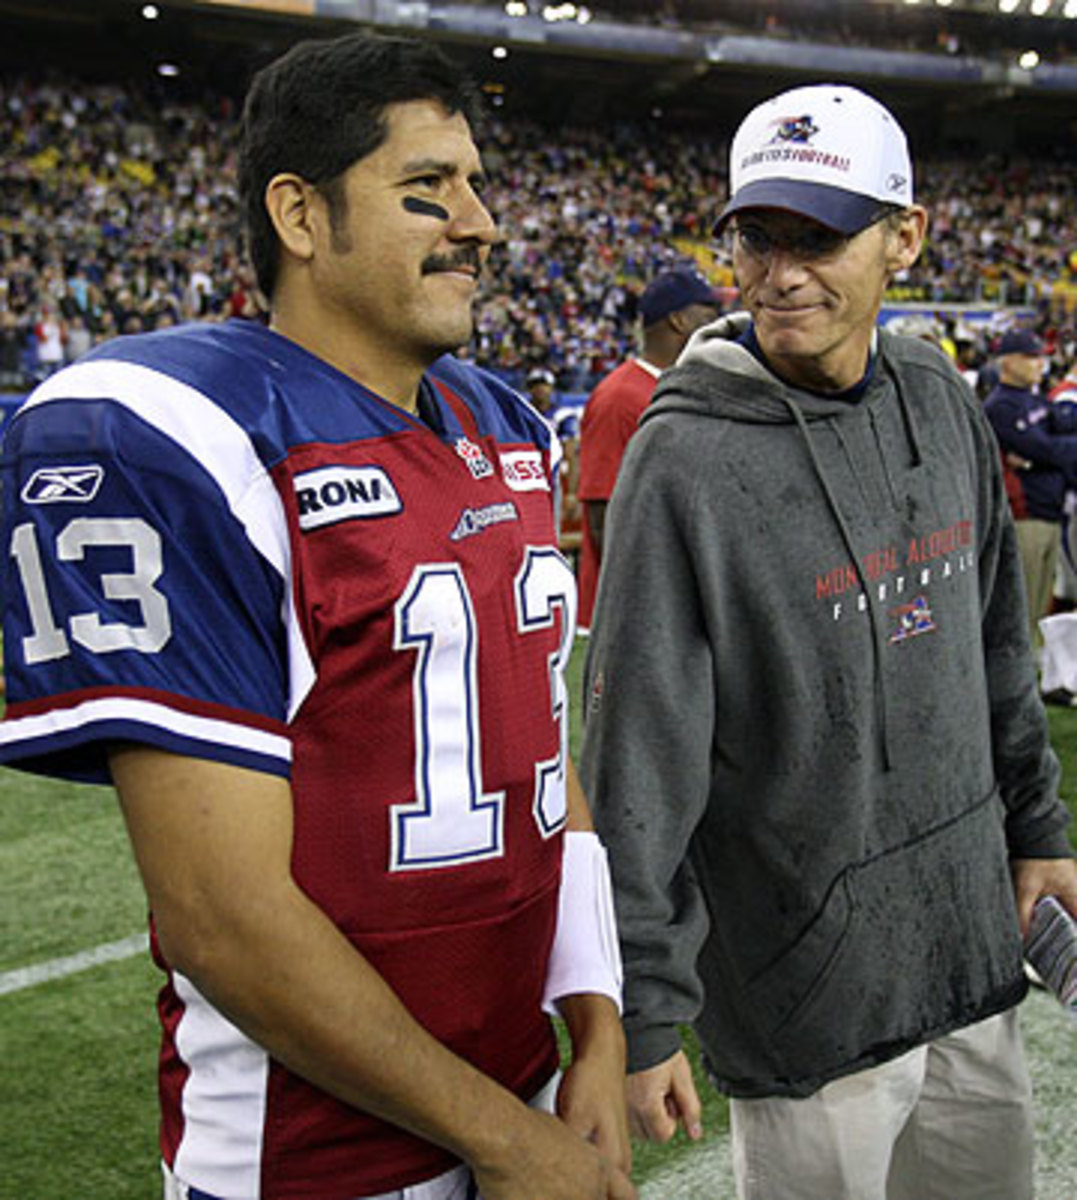 Trestman coached CFL legend Anthony Calvillo for five of the quarterback's 20 seasons. (Ryan Remiorz/The Canadian Press/AP)